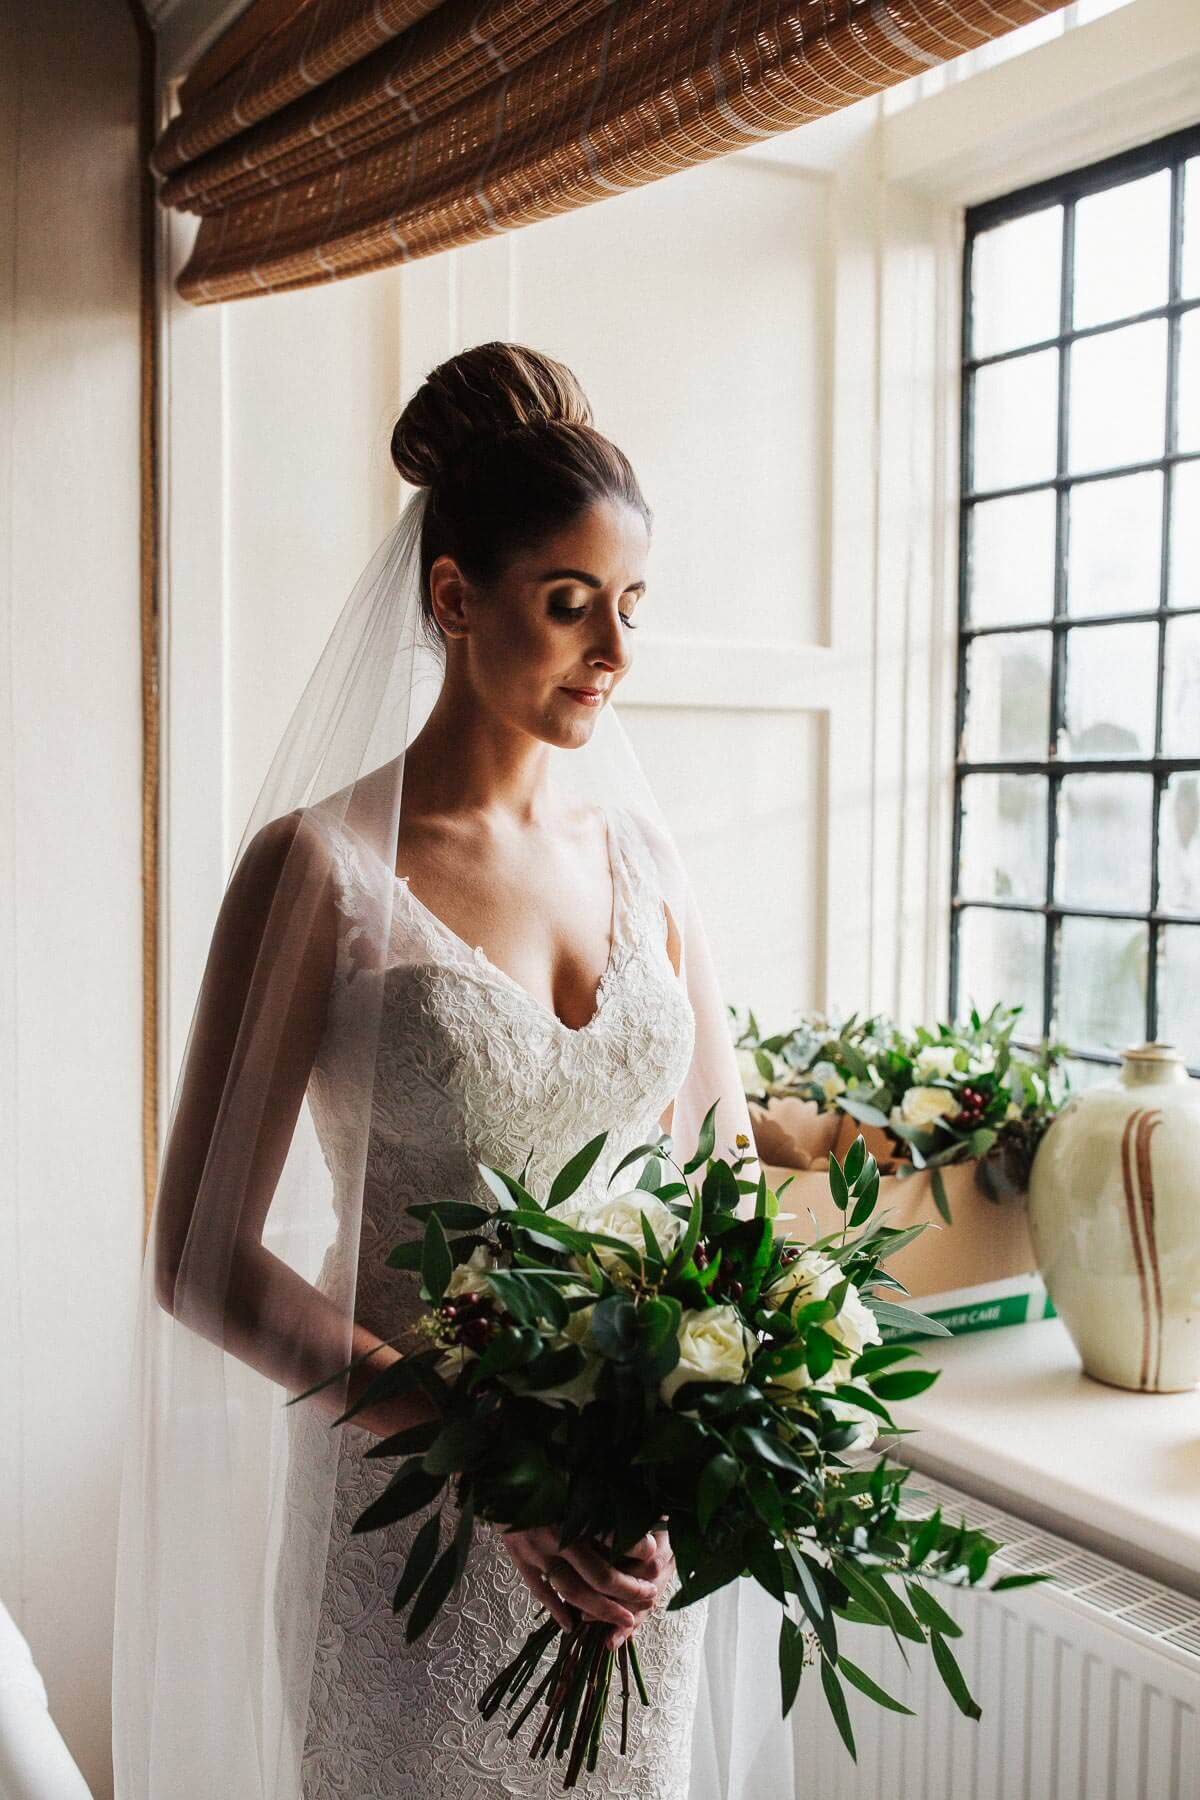 Beautiful bride wearing a lace dress and bun hairstyle